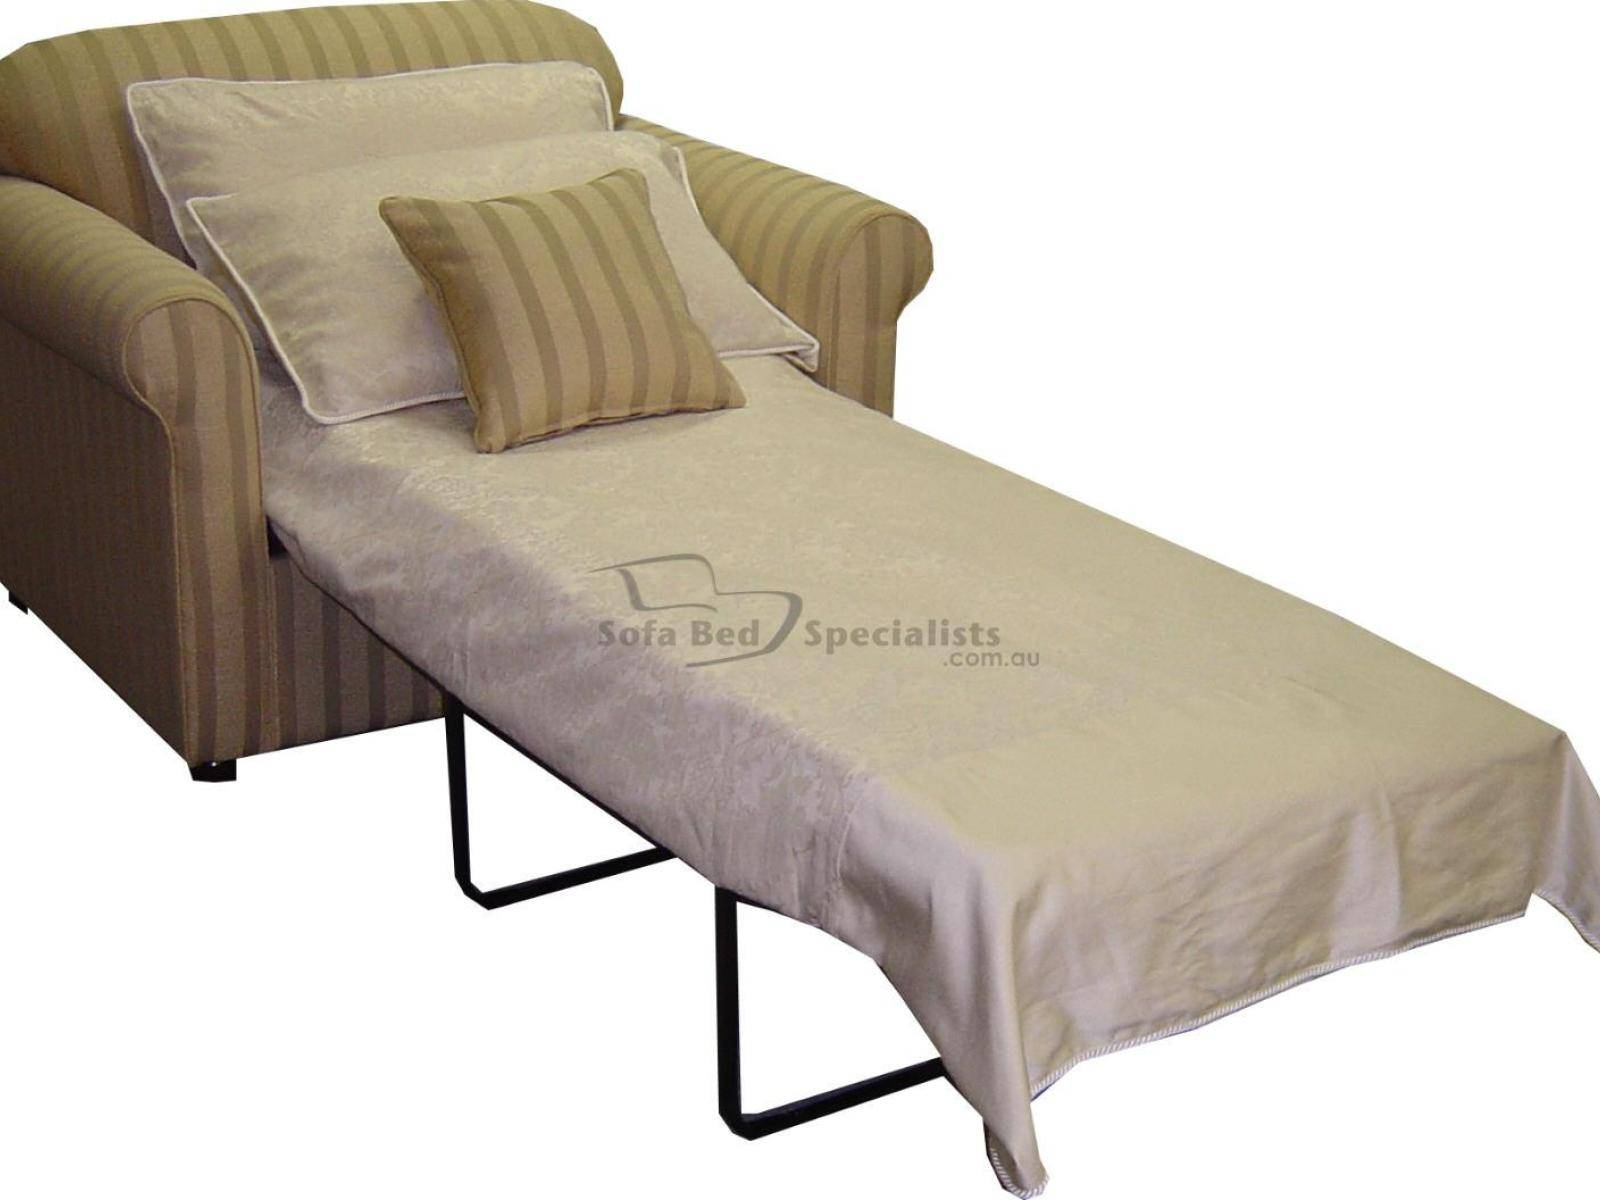 ▻ Sofa : 31 Folding A Futon Bed 2 Foam Sleeper Sofa Bed Mattress with regard to Ikea Single Sofa Beds (Image 28 of 30)